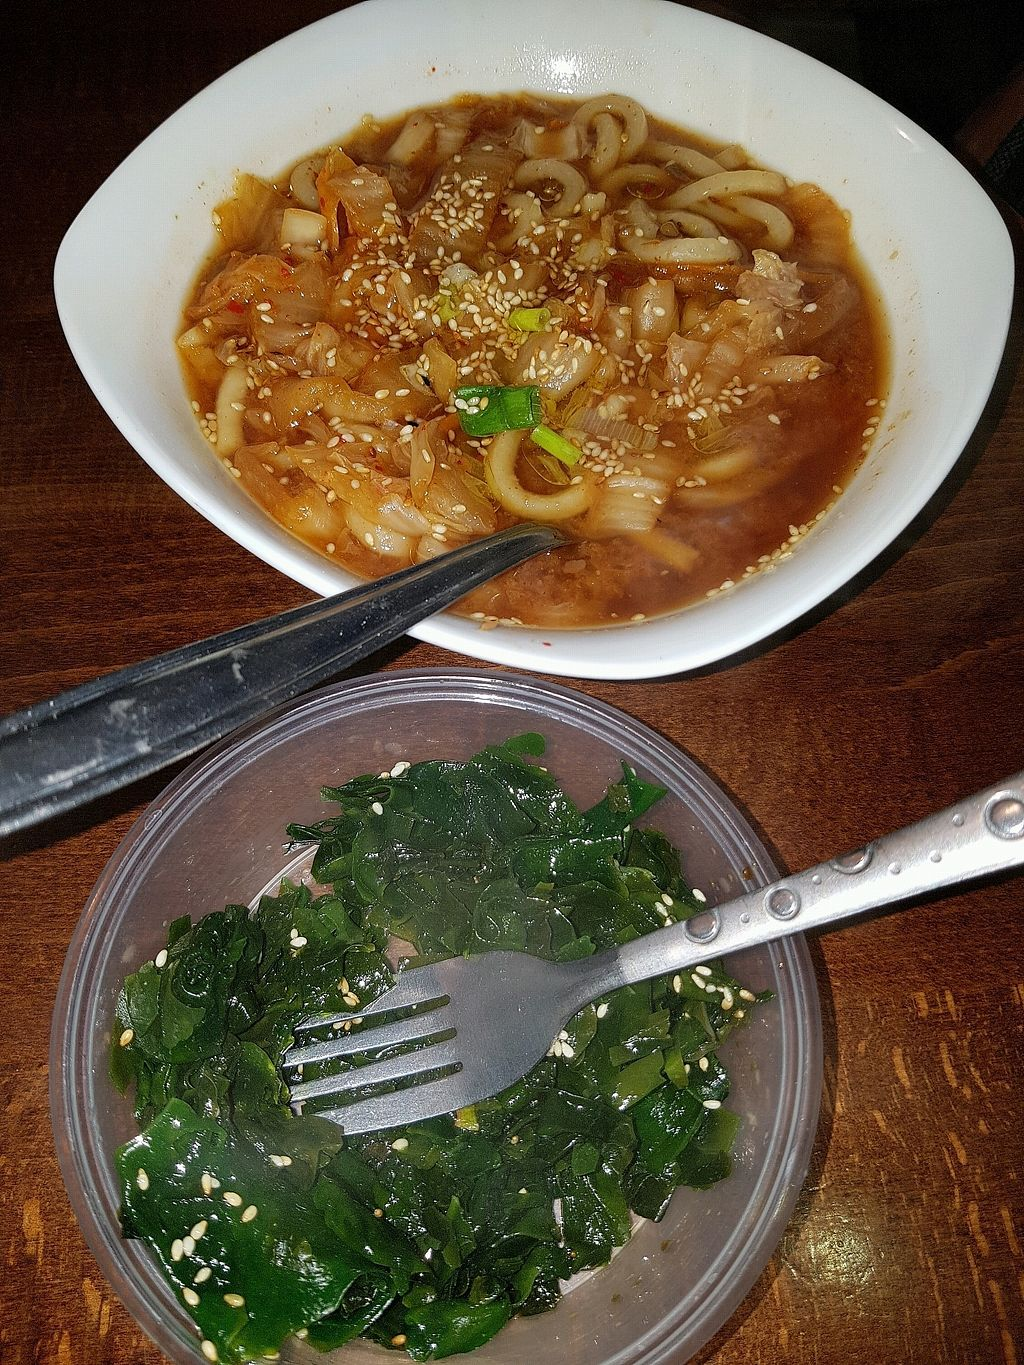 """Photo of Vegan Yes - Whitechapel  by <a href=""""/members/profile/estefinparis"""">estefinparis</a> <br/>Kimchi udon and seaweed salad <br/> December 5, 2017  - <a href='/contact/abuse/image/98828/332709'>Report</a>"""